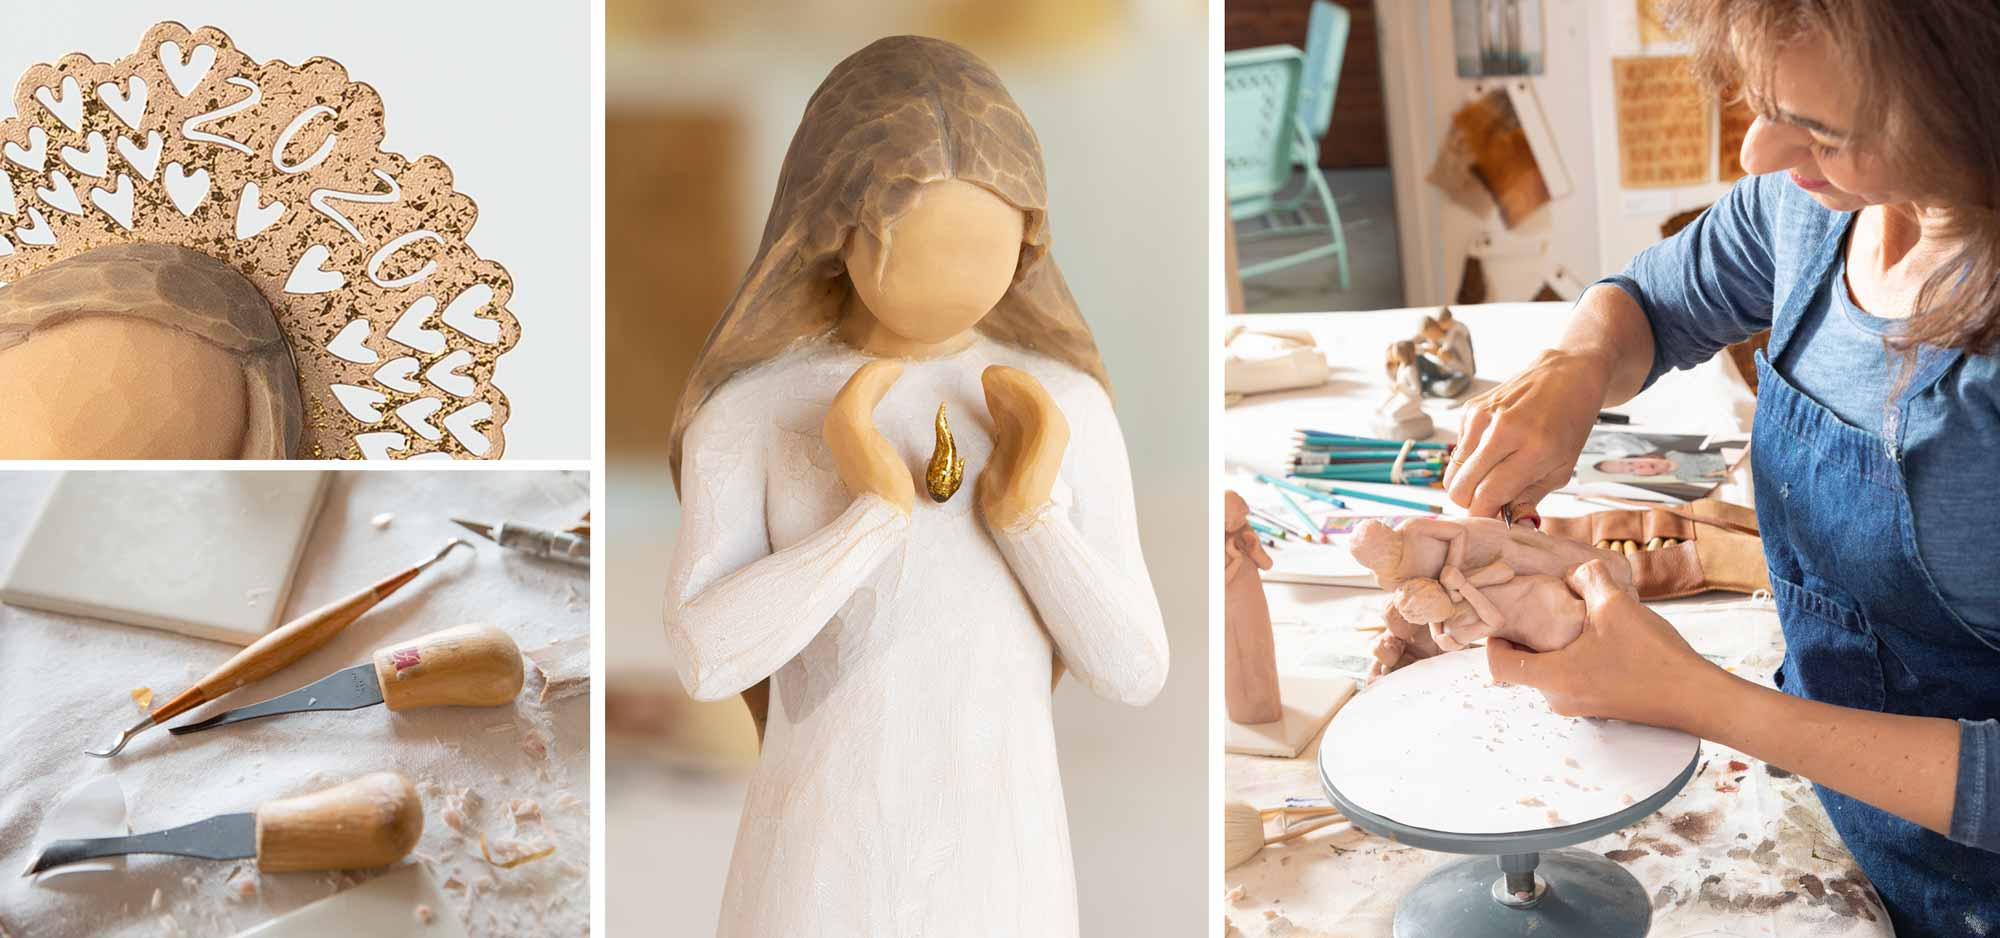 Images of artist carving figurines in a studio. Detail of gold 2020 crown and woman holding a gold flame.